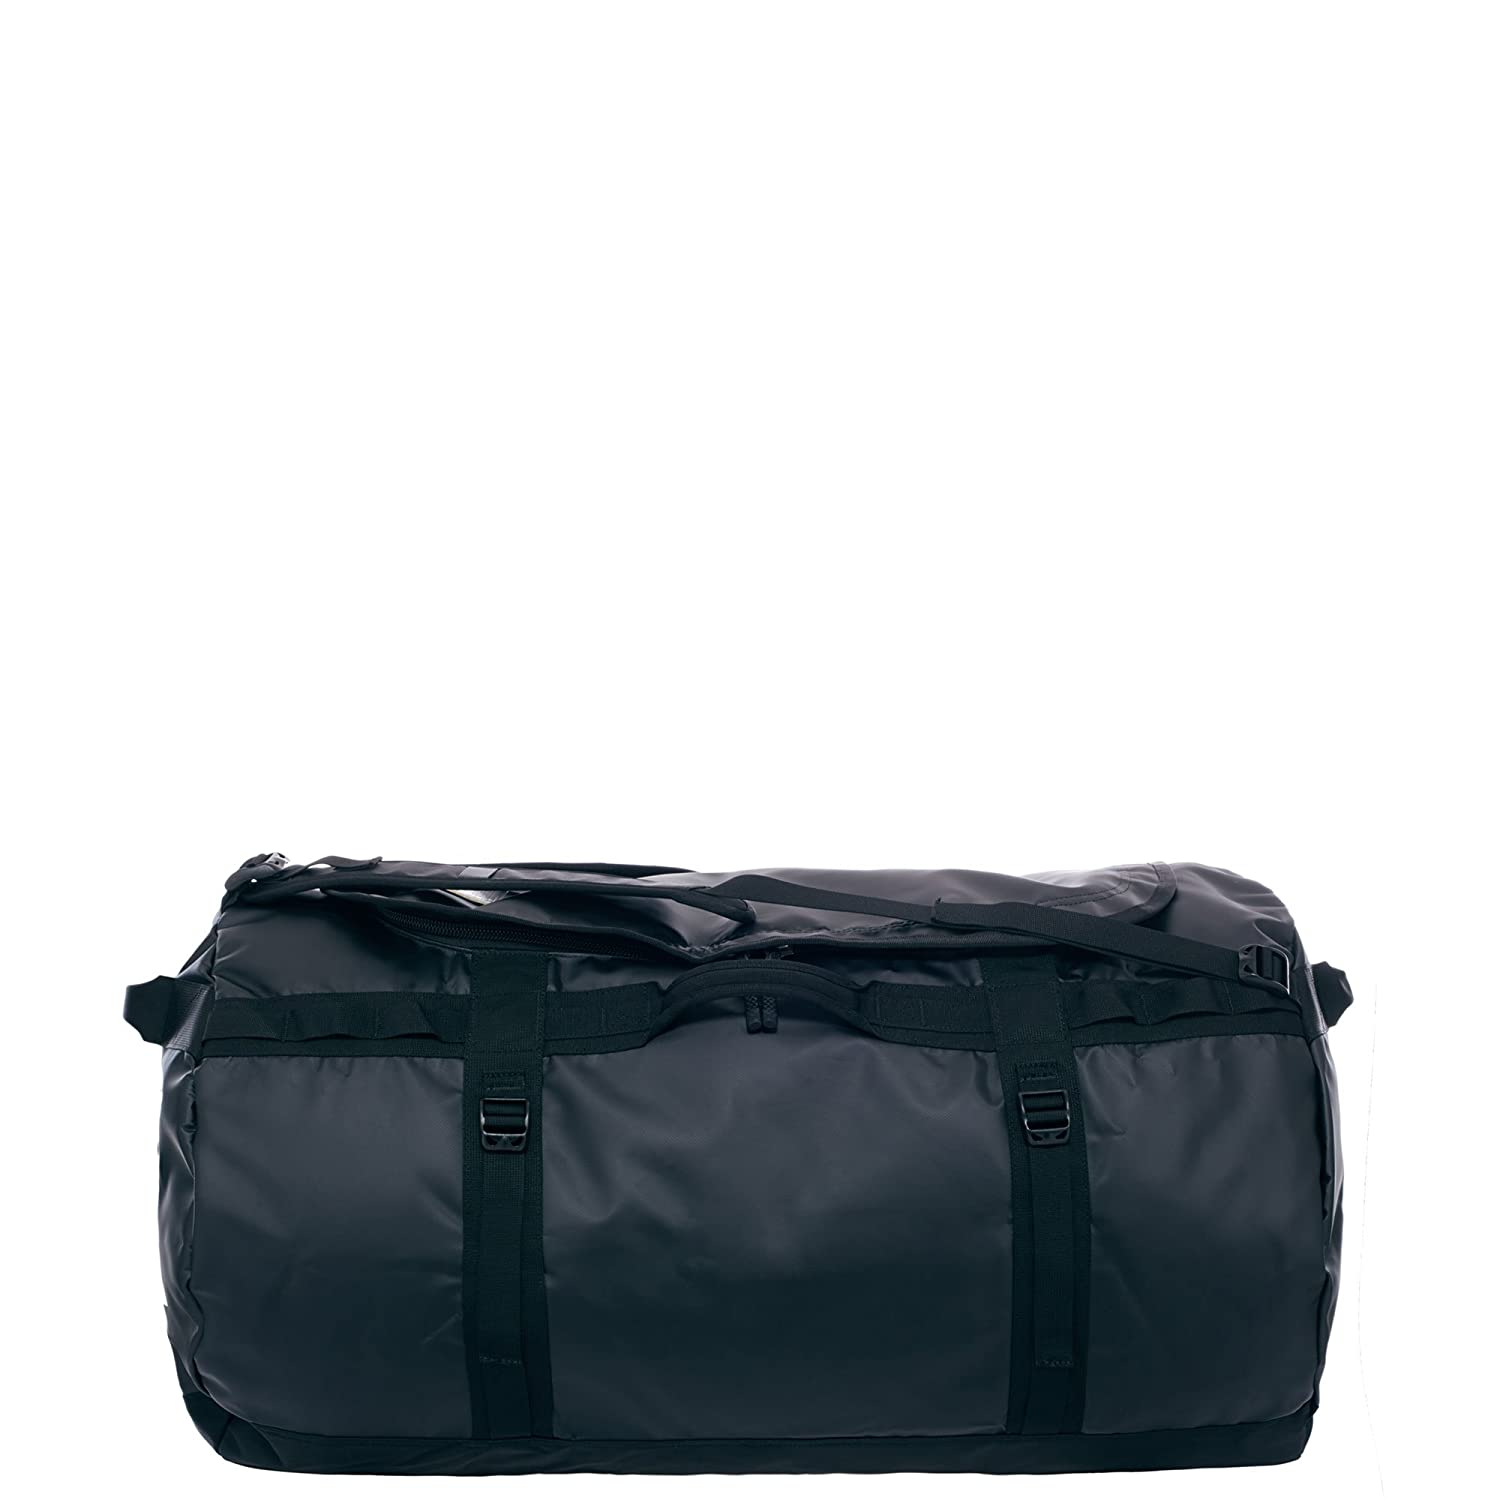 ce03f343d50 Amazon.com  The North Face Base Camp Duffel- Extra Large Duffel Bag TNF  Black  Duffel Bags  Clothing